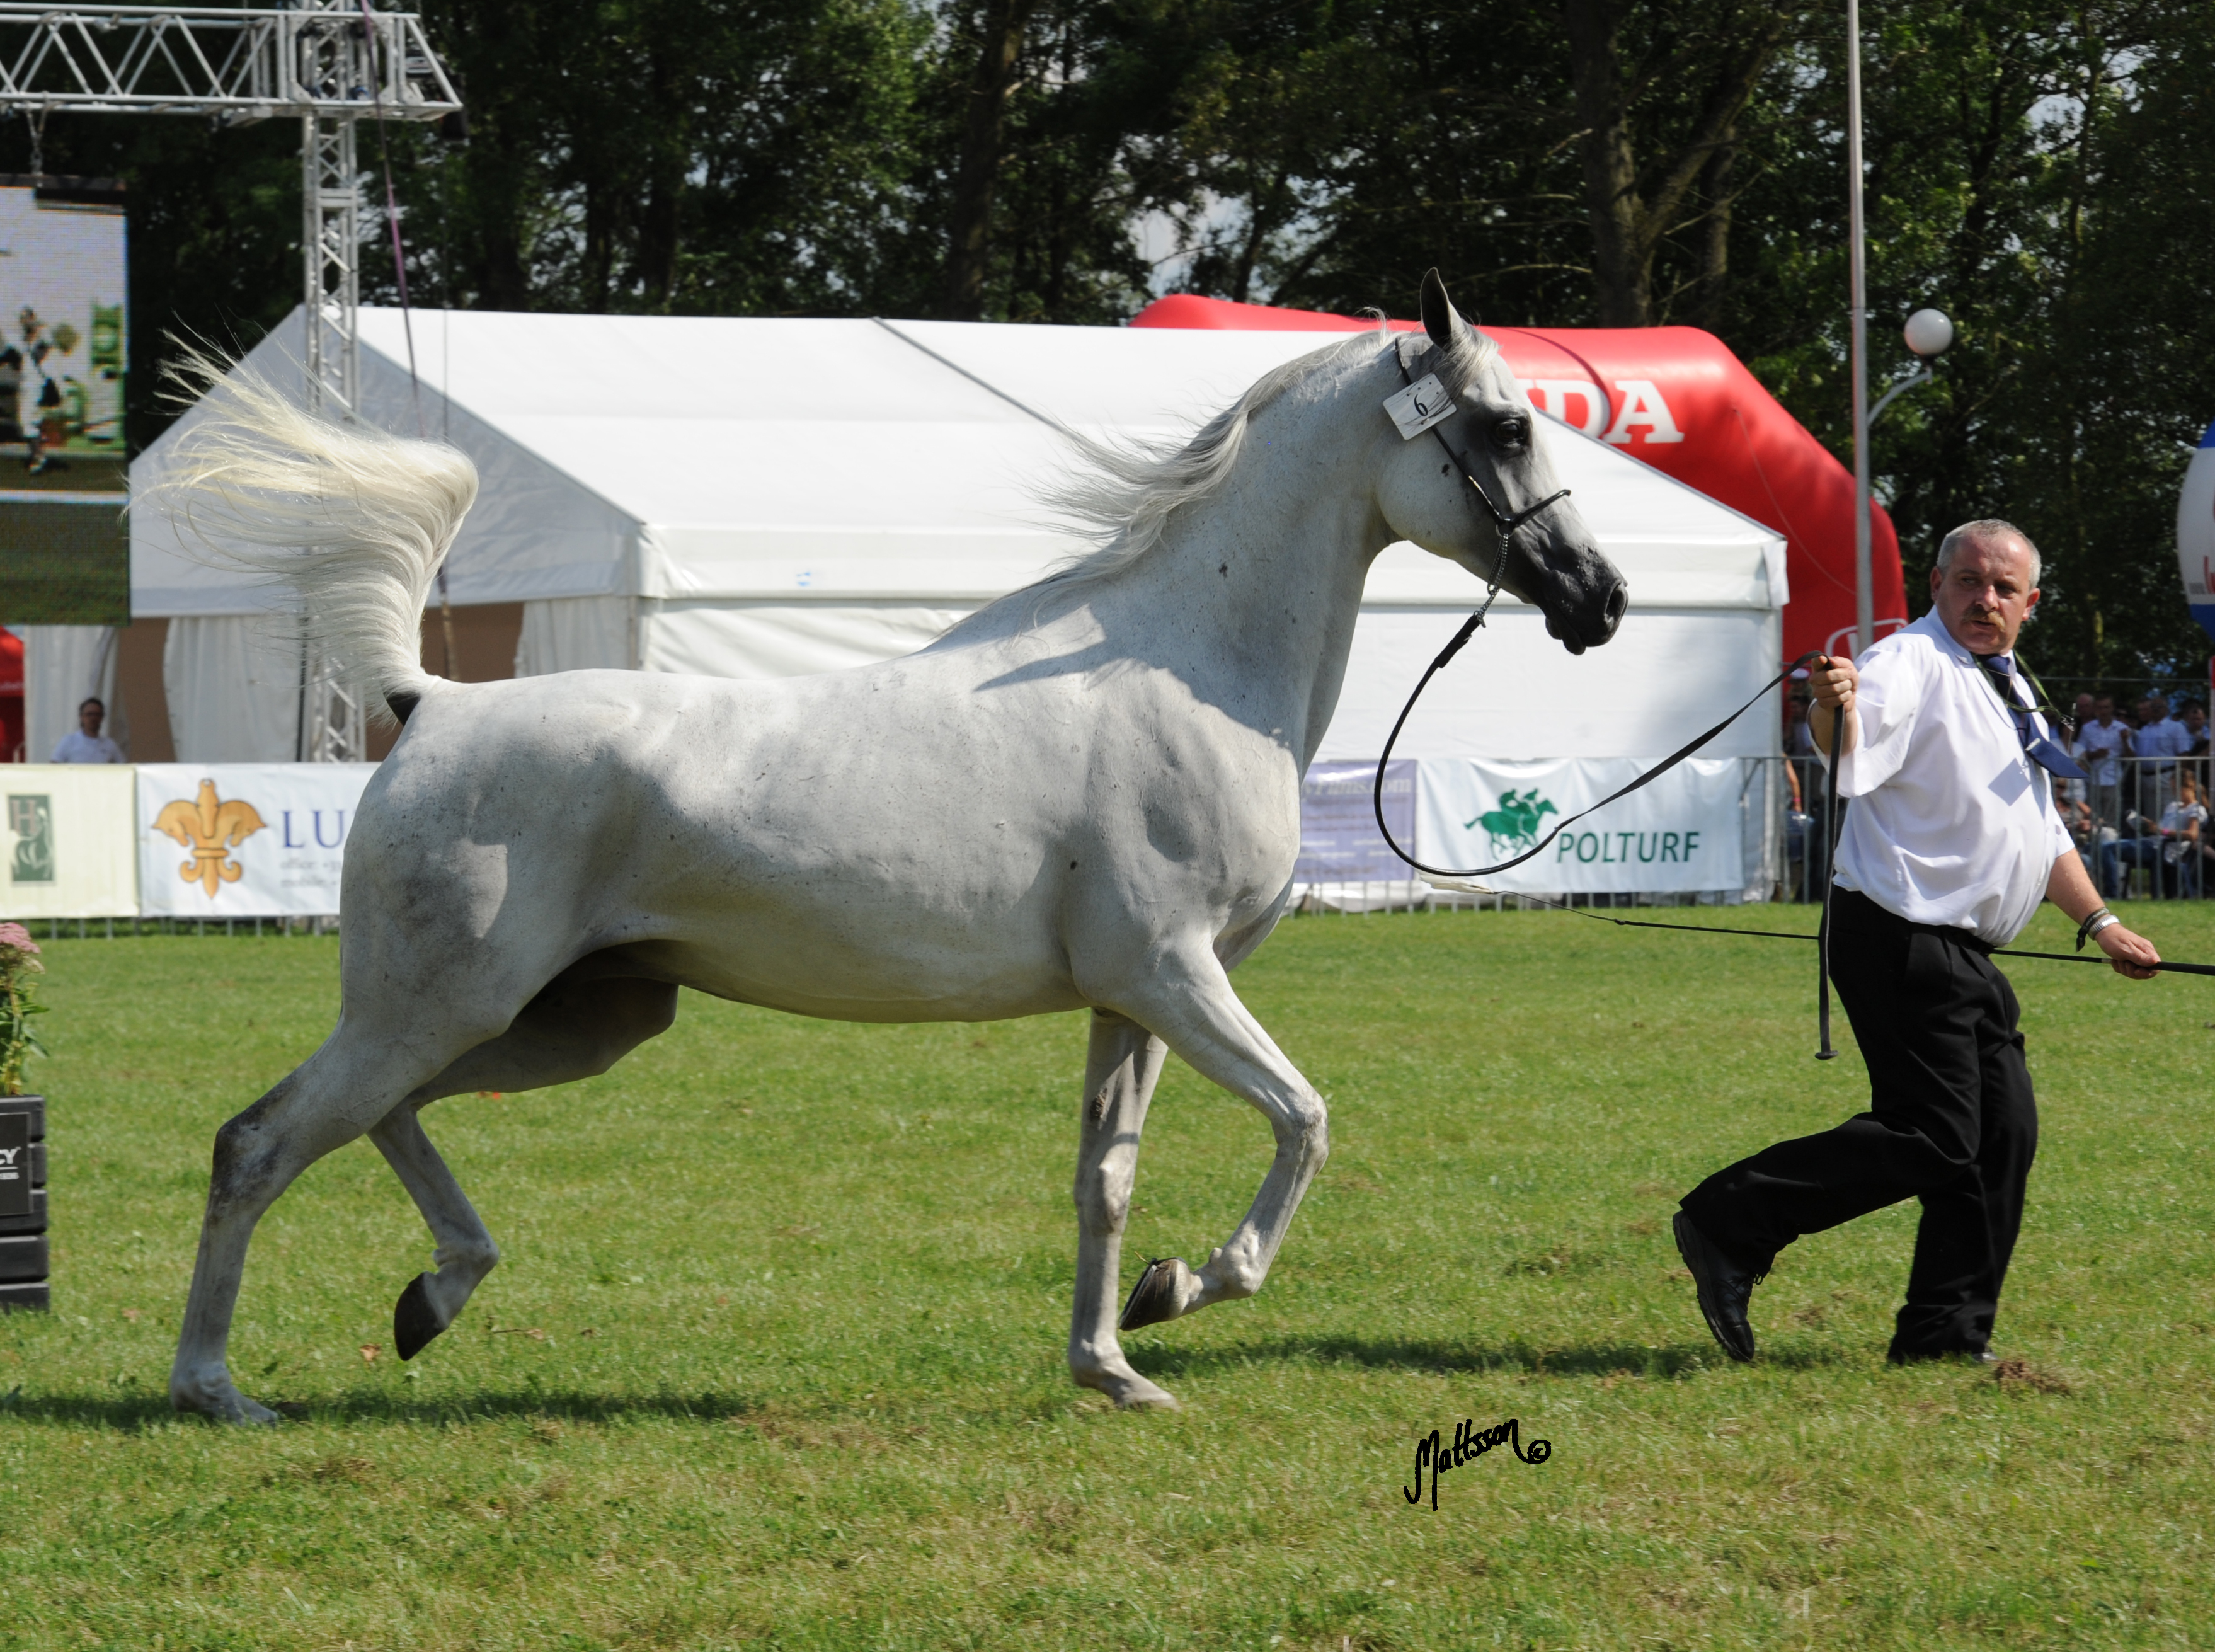 Wilga at the Pride of Poland sale preview in 2010